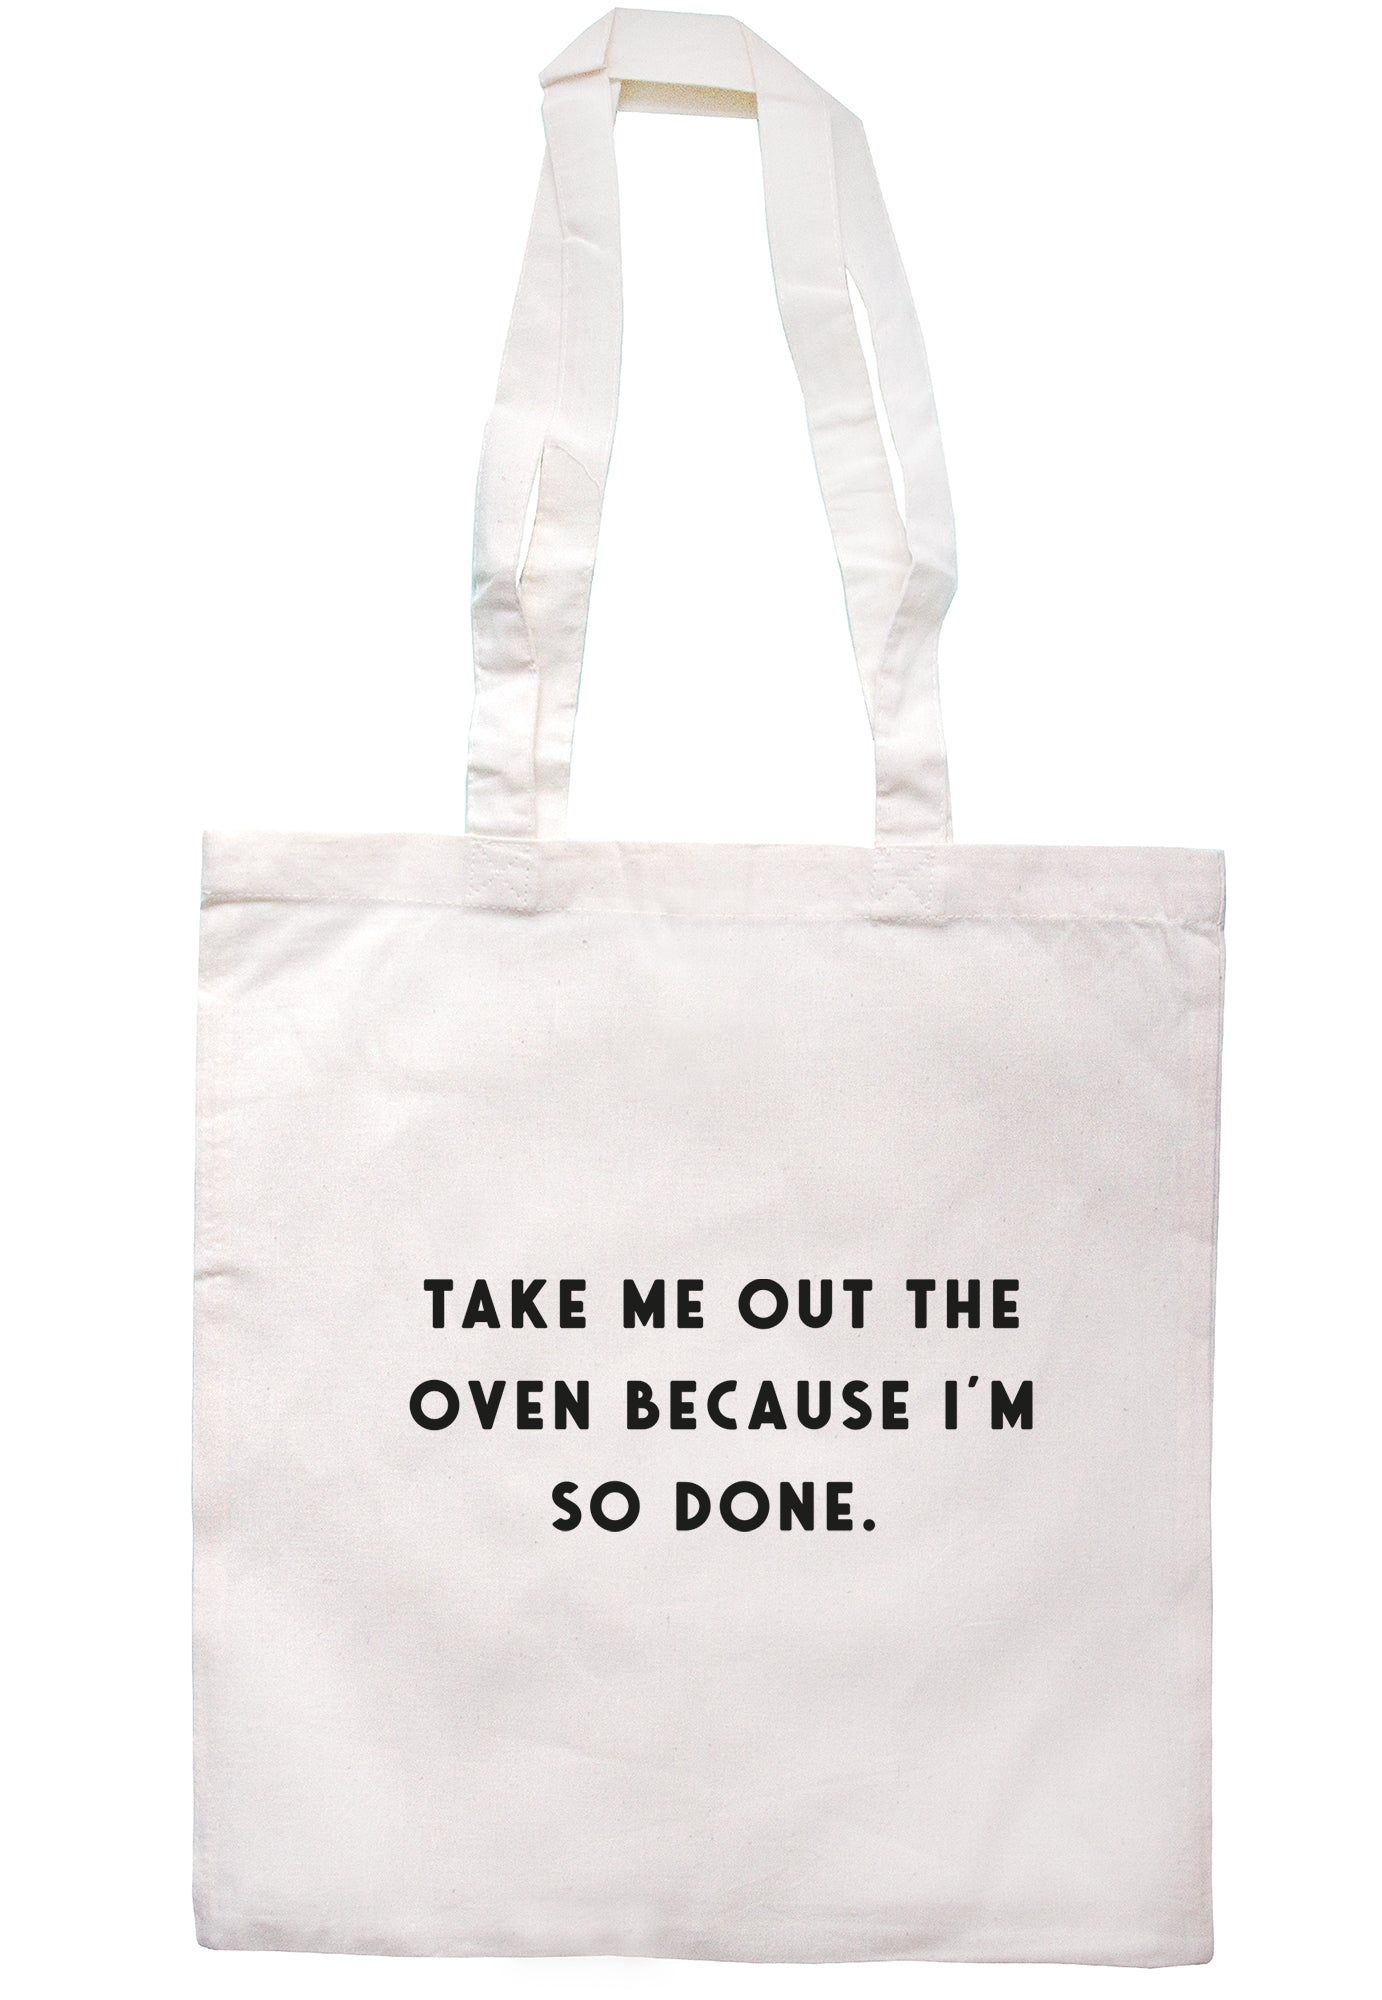 Take Me Out The Oven Because I'm So Done Tote Bag S1147 - Illustrated Identity Ltd.